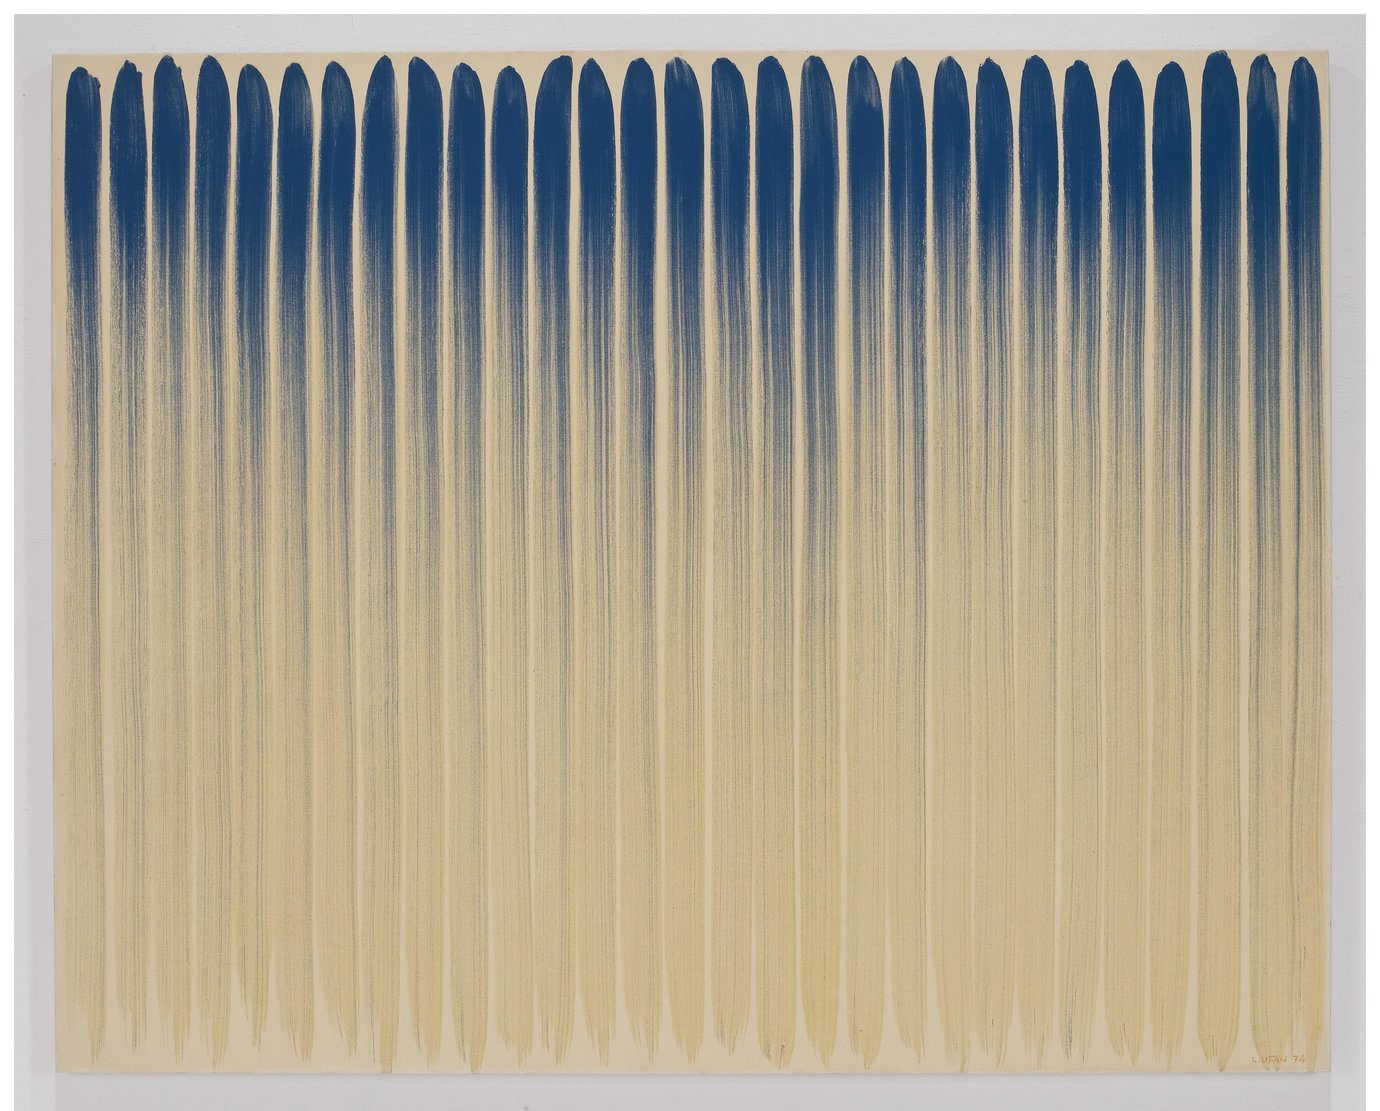 ", 1974. Oil on canvas, 71-1/2"" x 89-3/8"" (181.6 cm x 227 cm)."